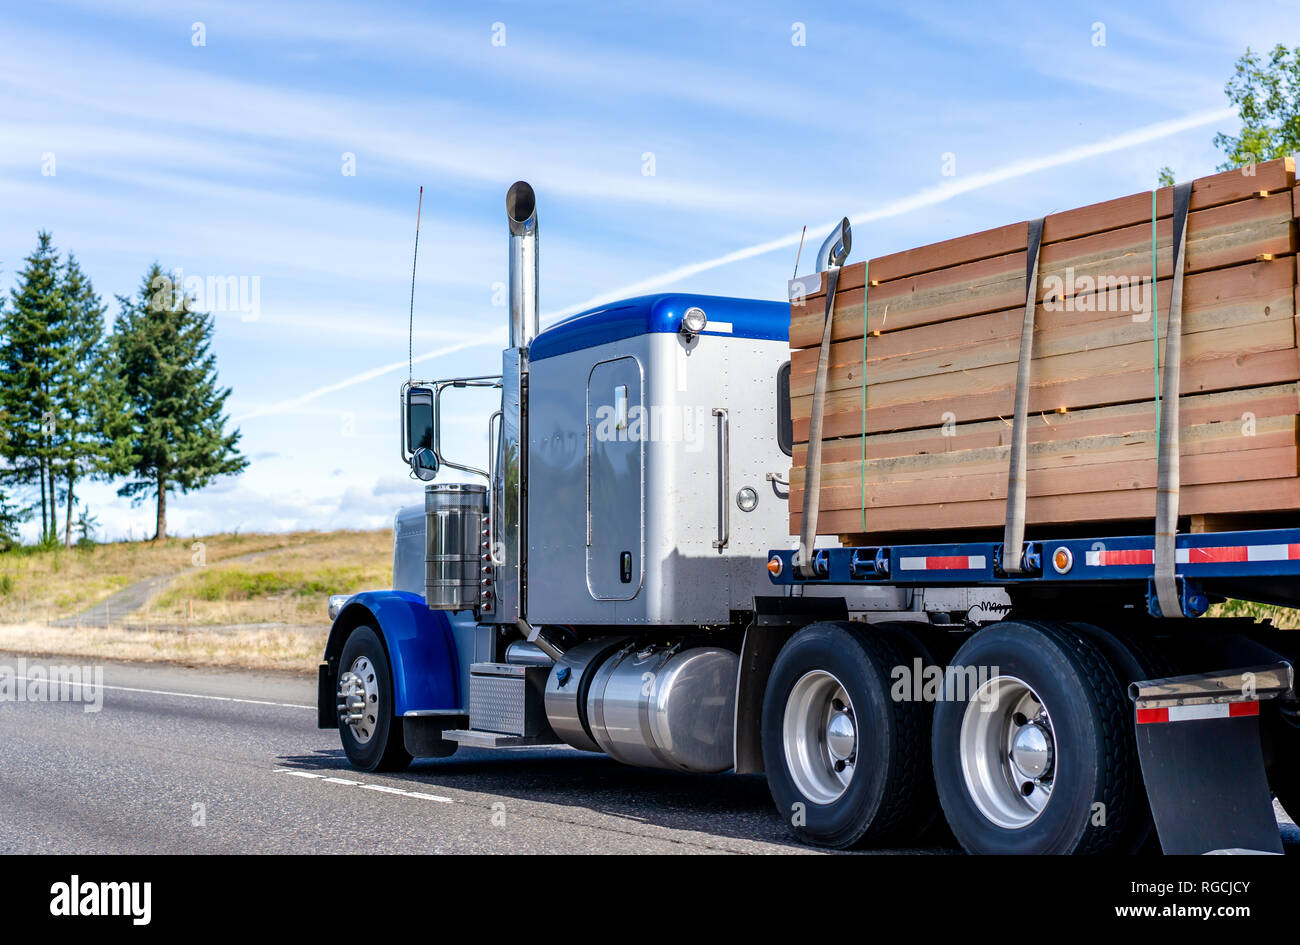 Big Rig Classic American Blue Bonnet Semi Truck Tractor With High Exhaust Pipes Transporting Stocked Up Lumber Wood On Flat Bed Semi Trailer Running O Stock Photo Alamy